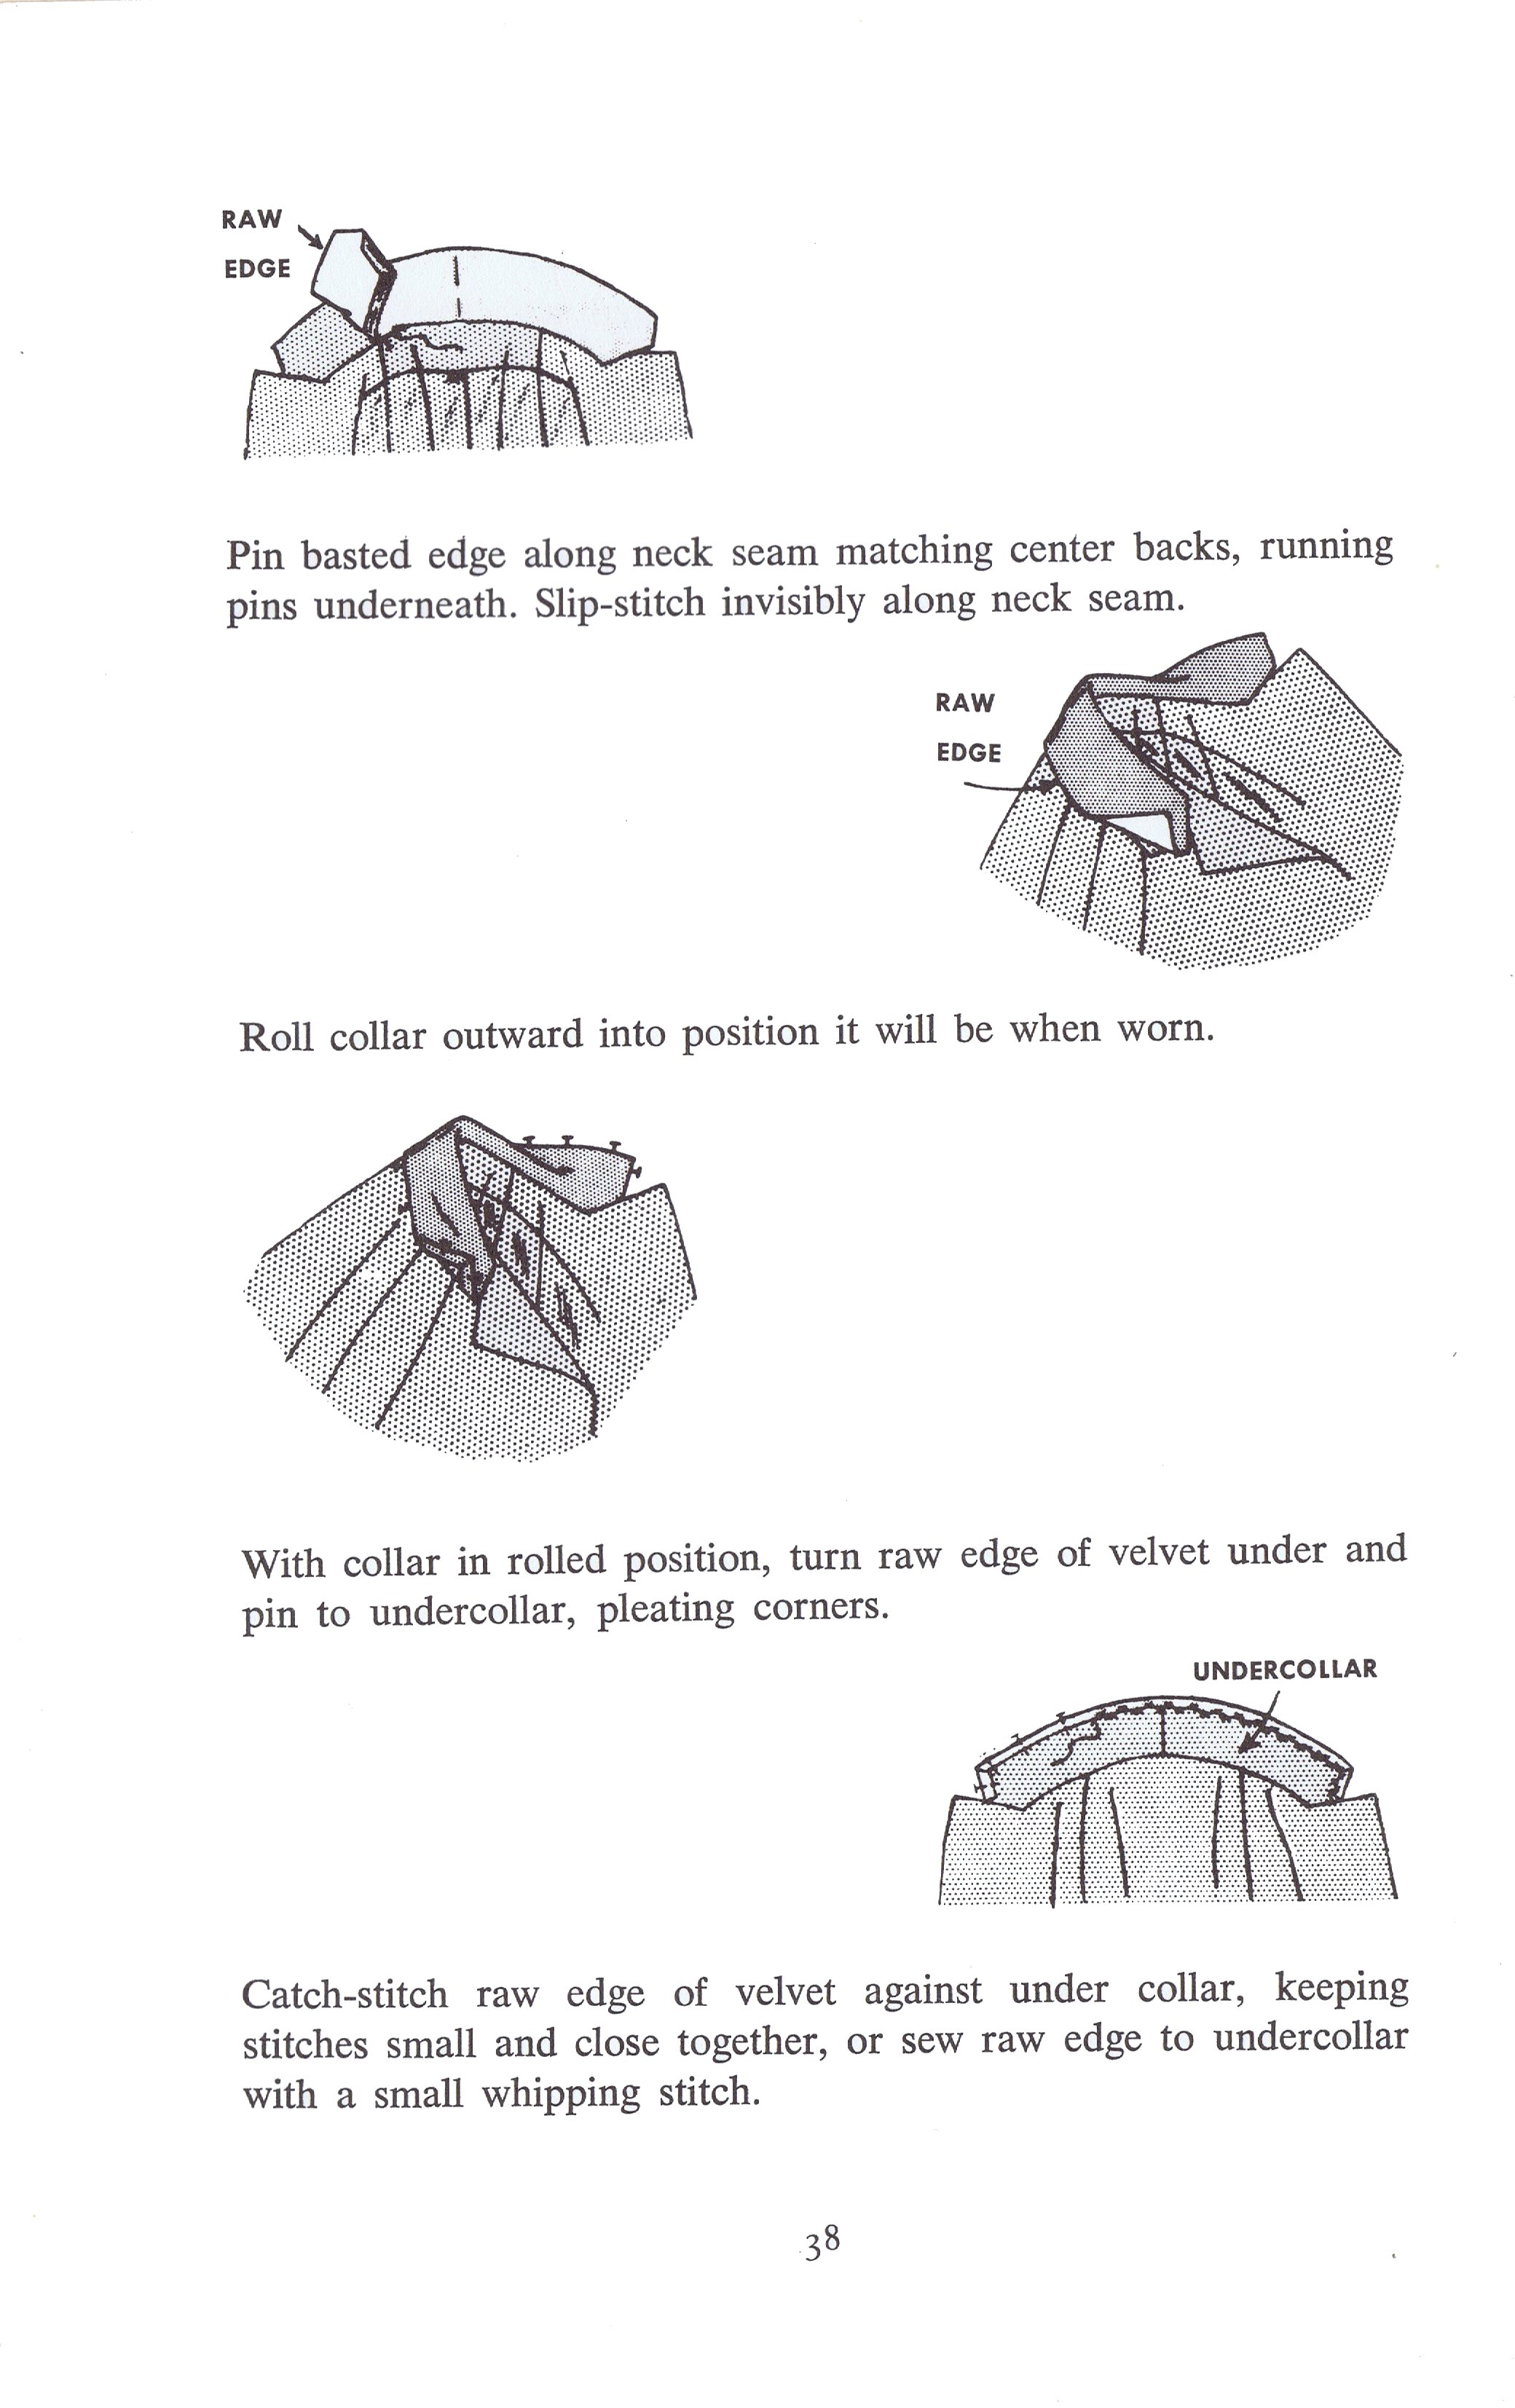 how to tie a slip knot chair sash rose gold satin uk designer sewing tips tailors  vintage patterns